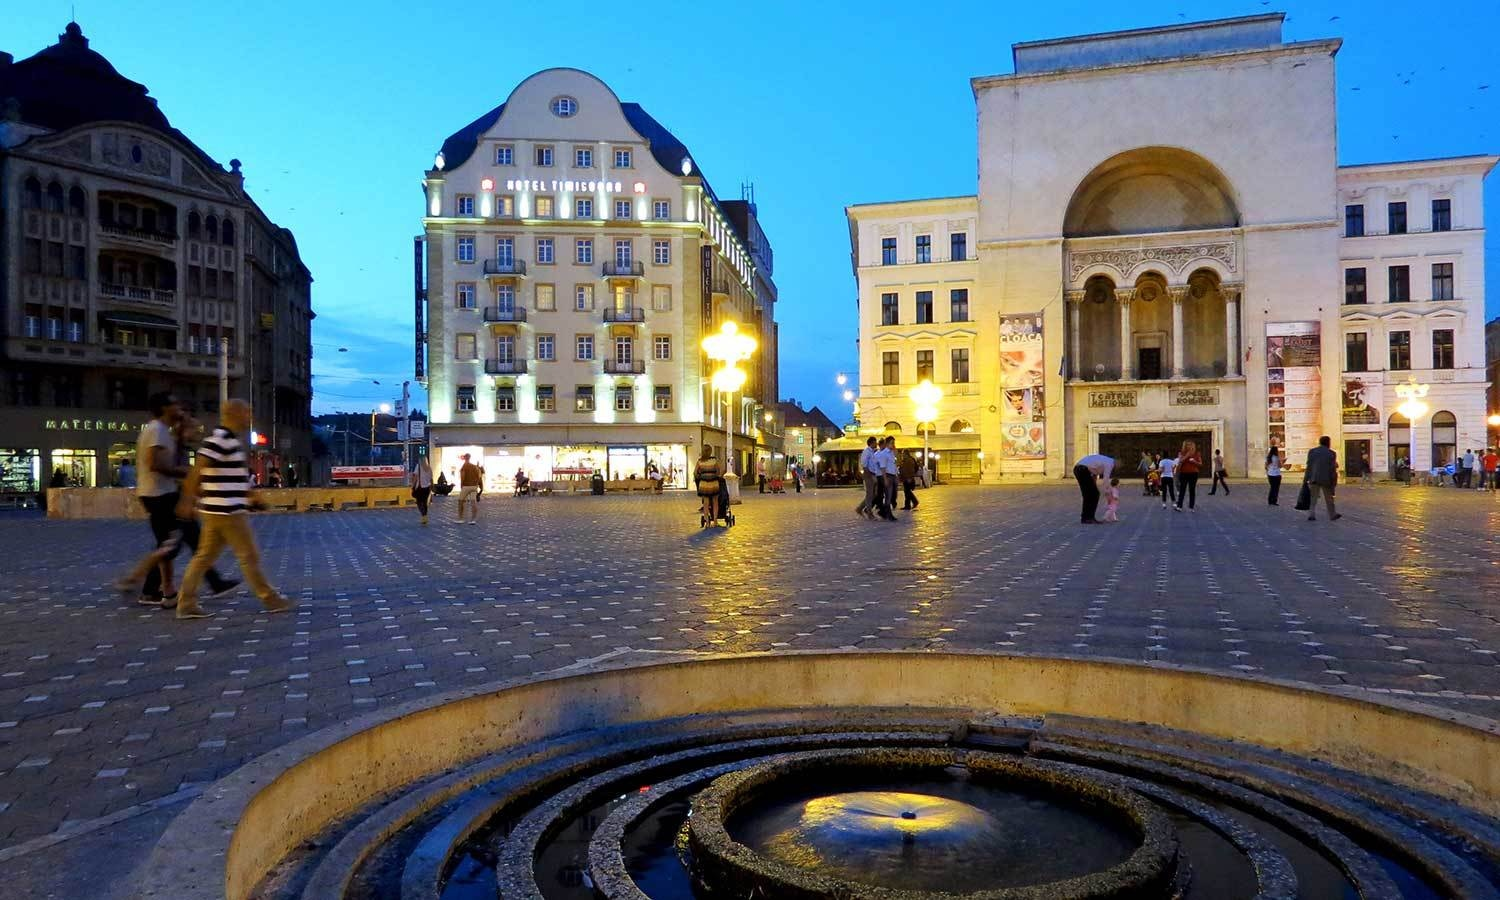 Opera Square in modern-day Timisoara. - Photo by Urooj Qureshi